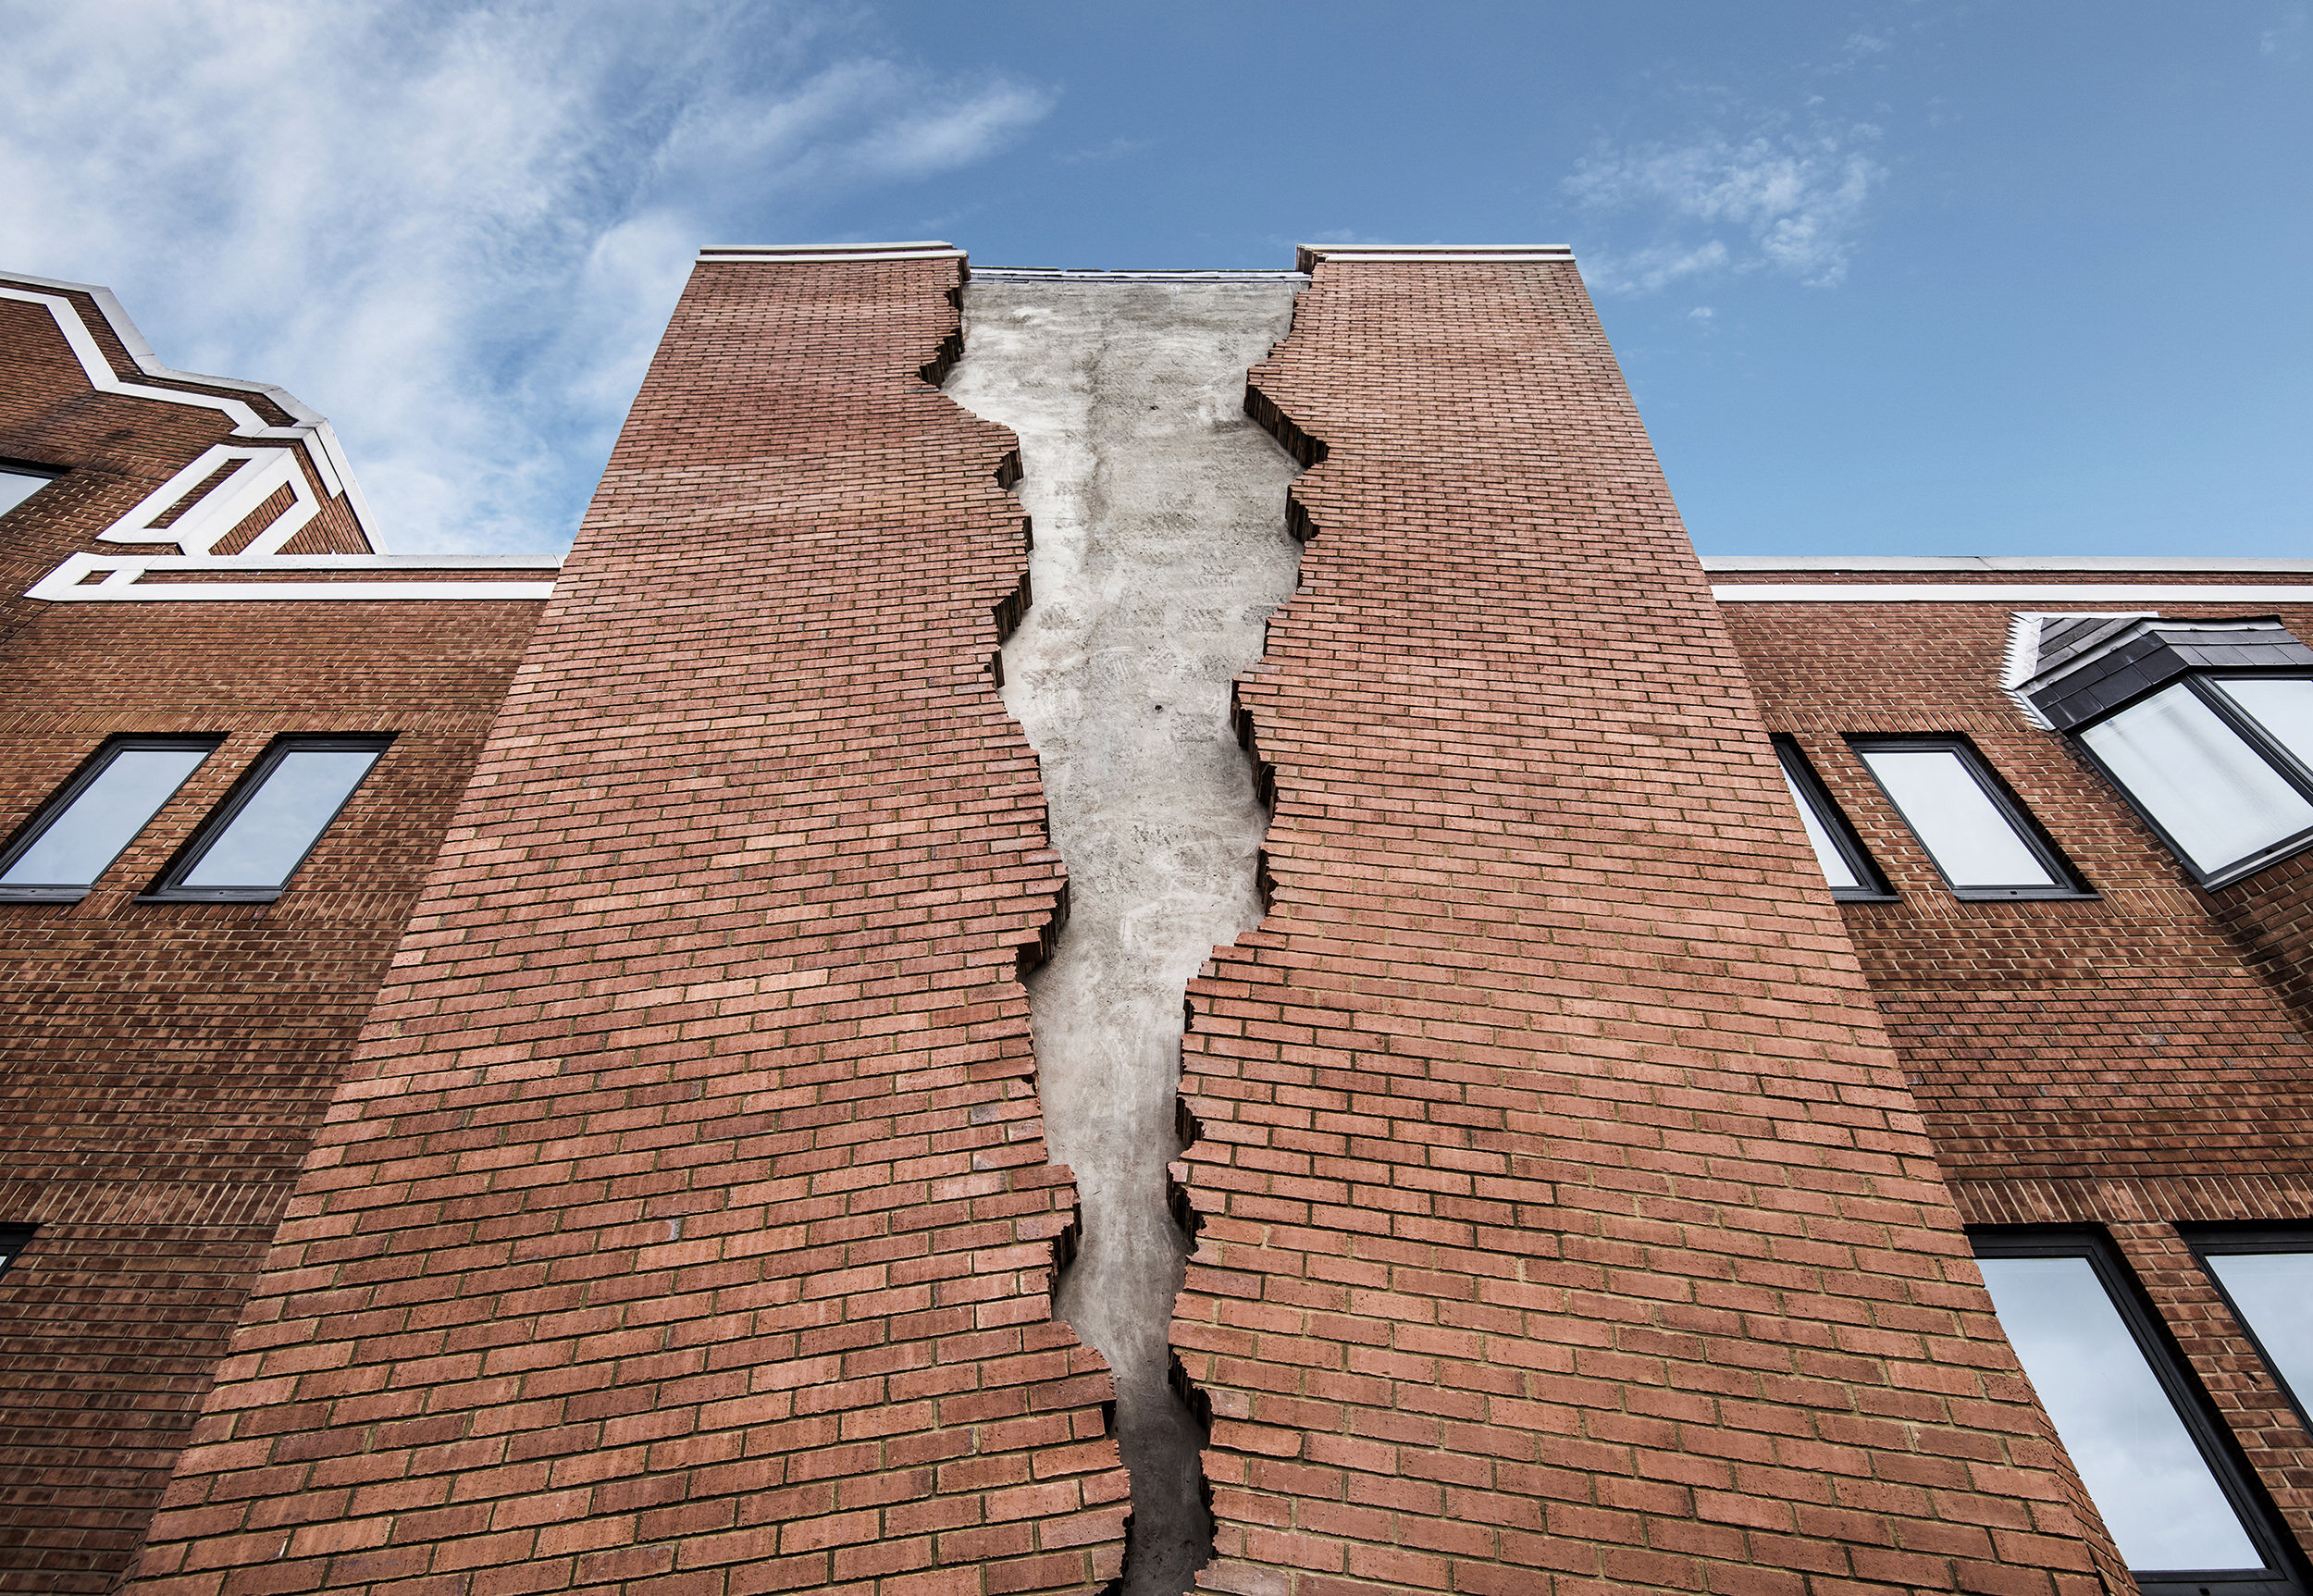 2. Alex Chinneck - Six pins and half a dozen needles - Image by Charles Emerson.jpeg